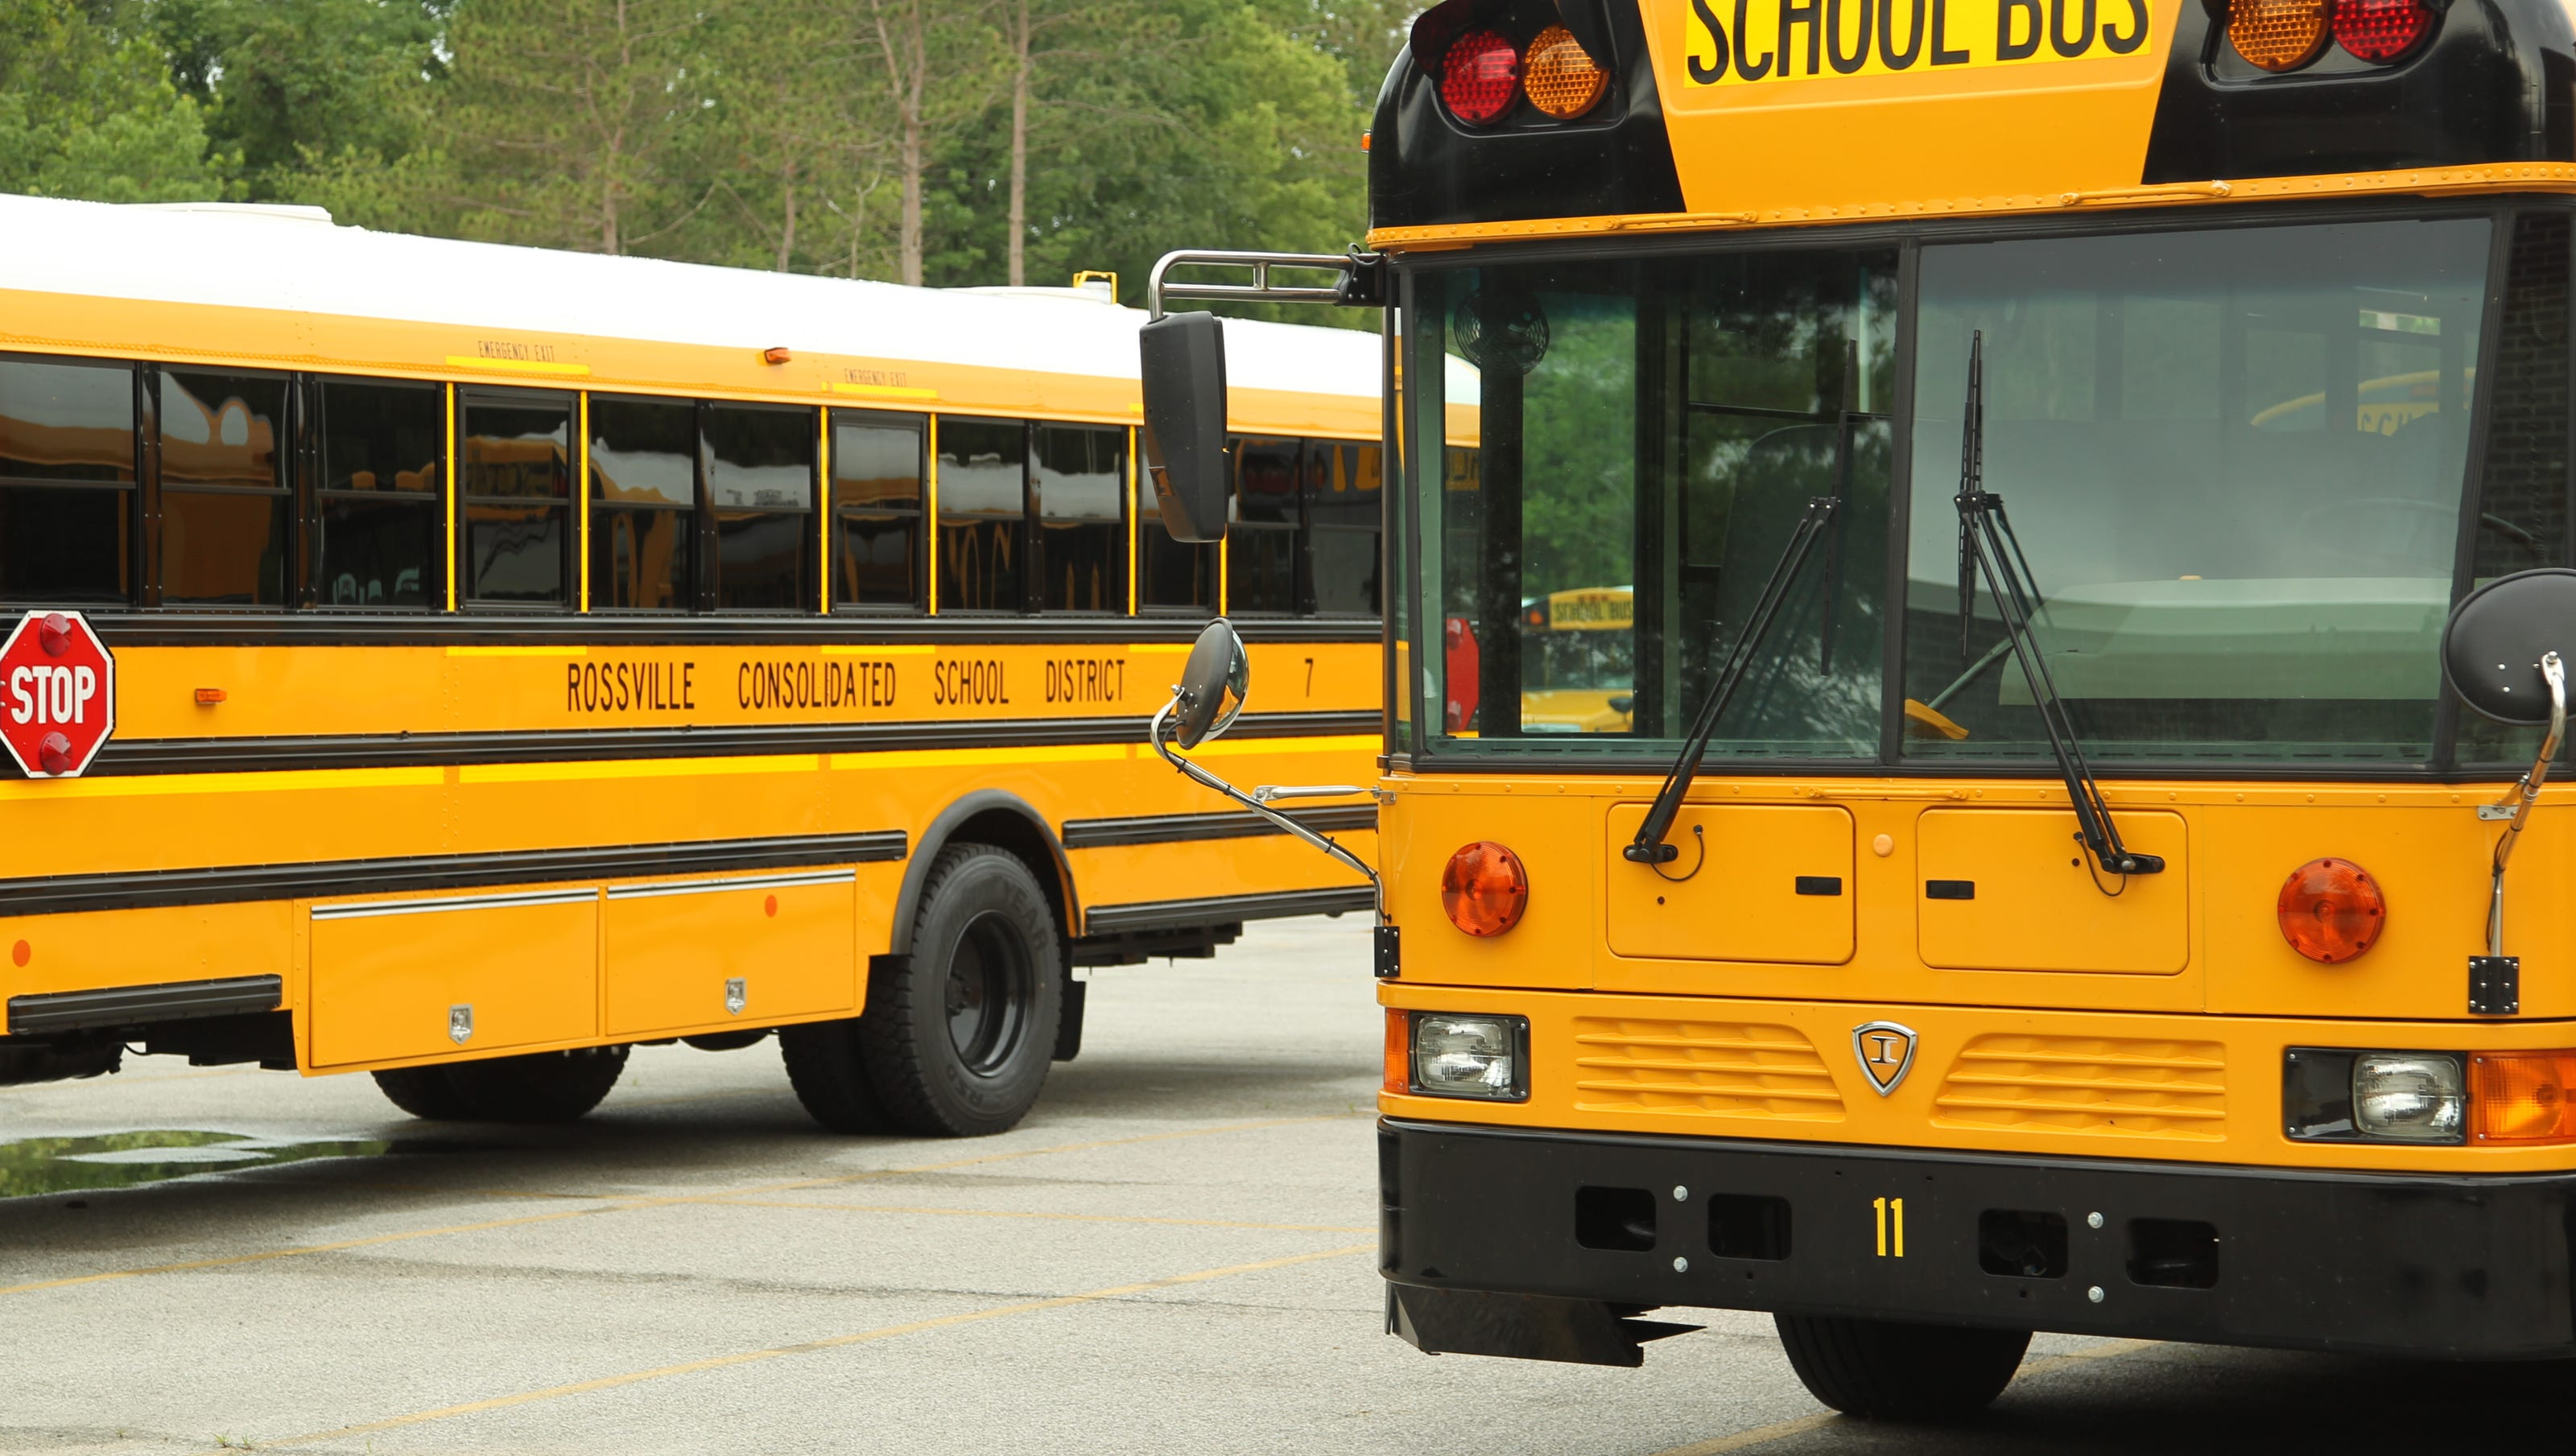 New Bus System Aides Rossville Schools